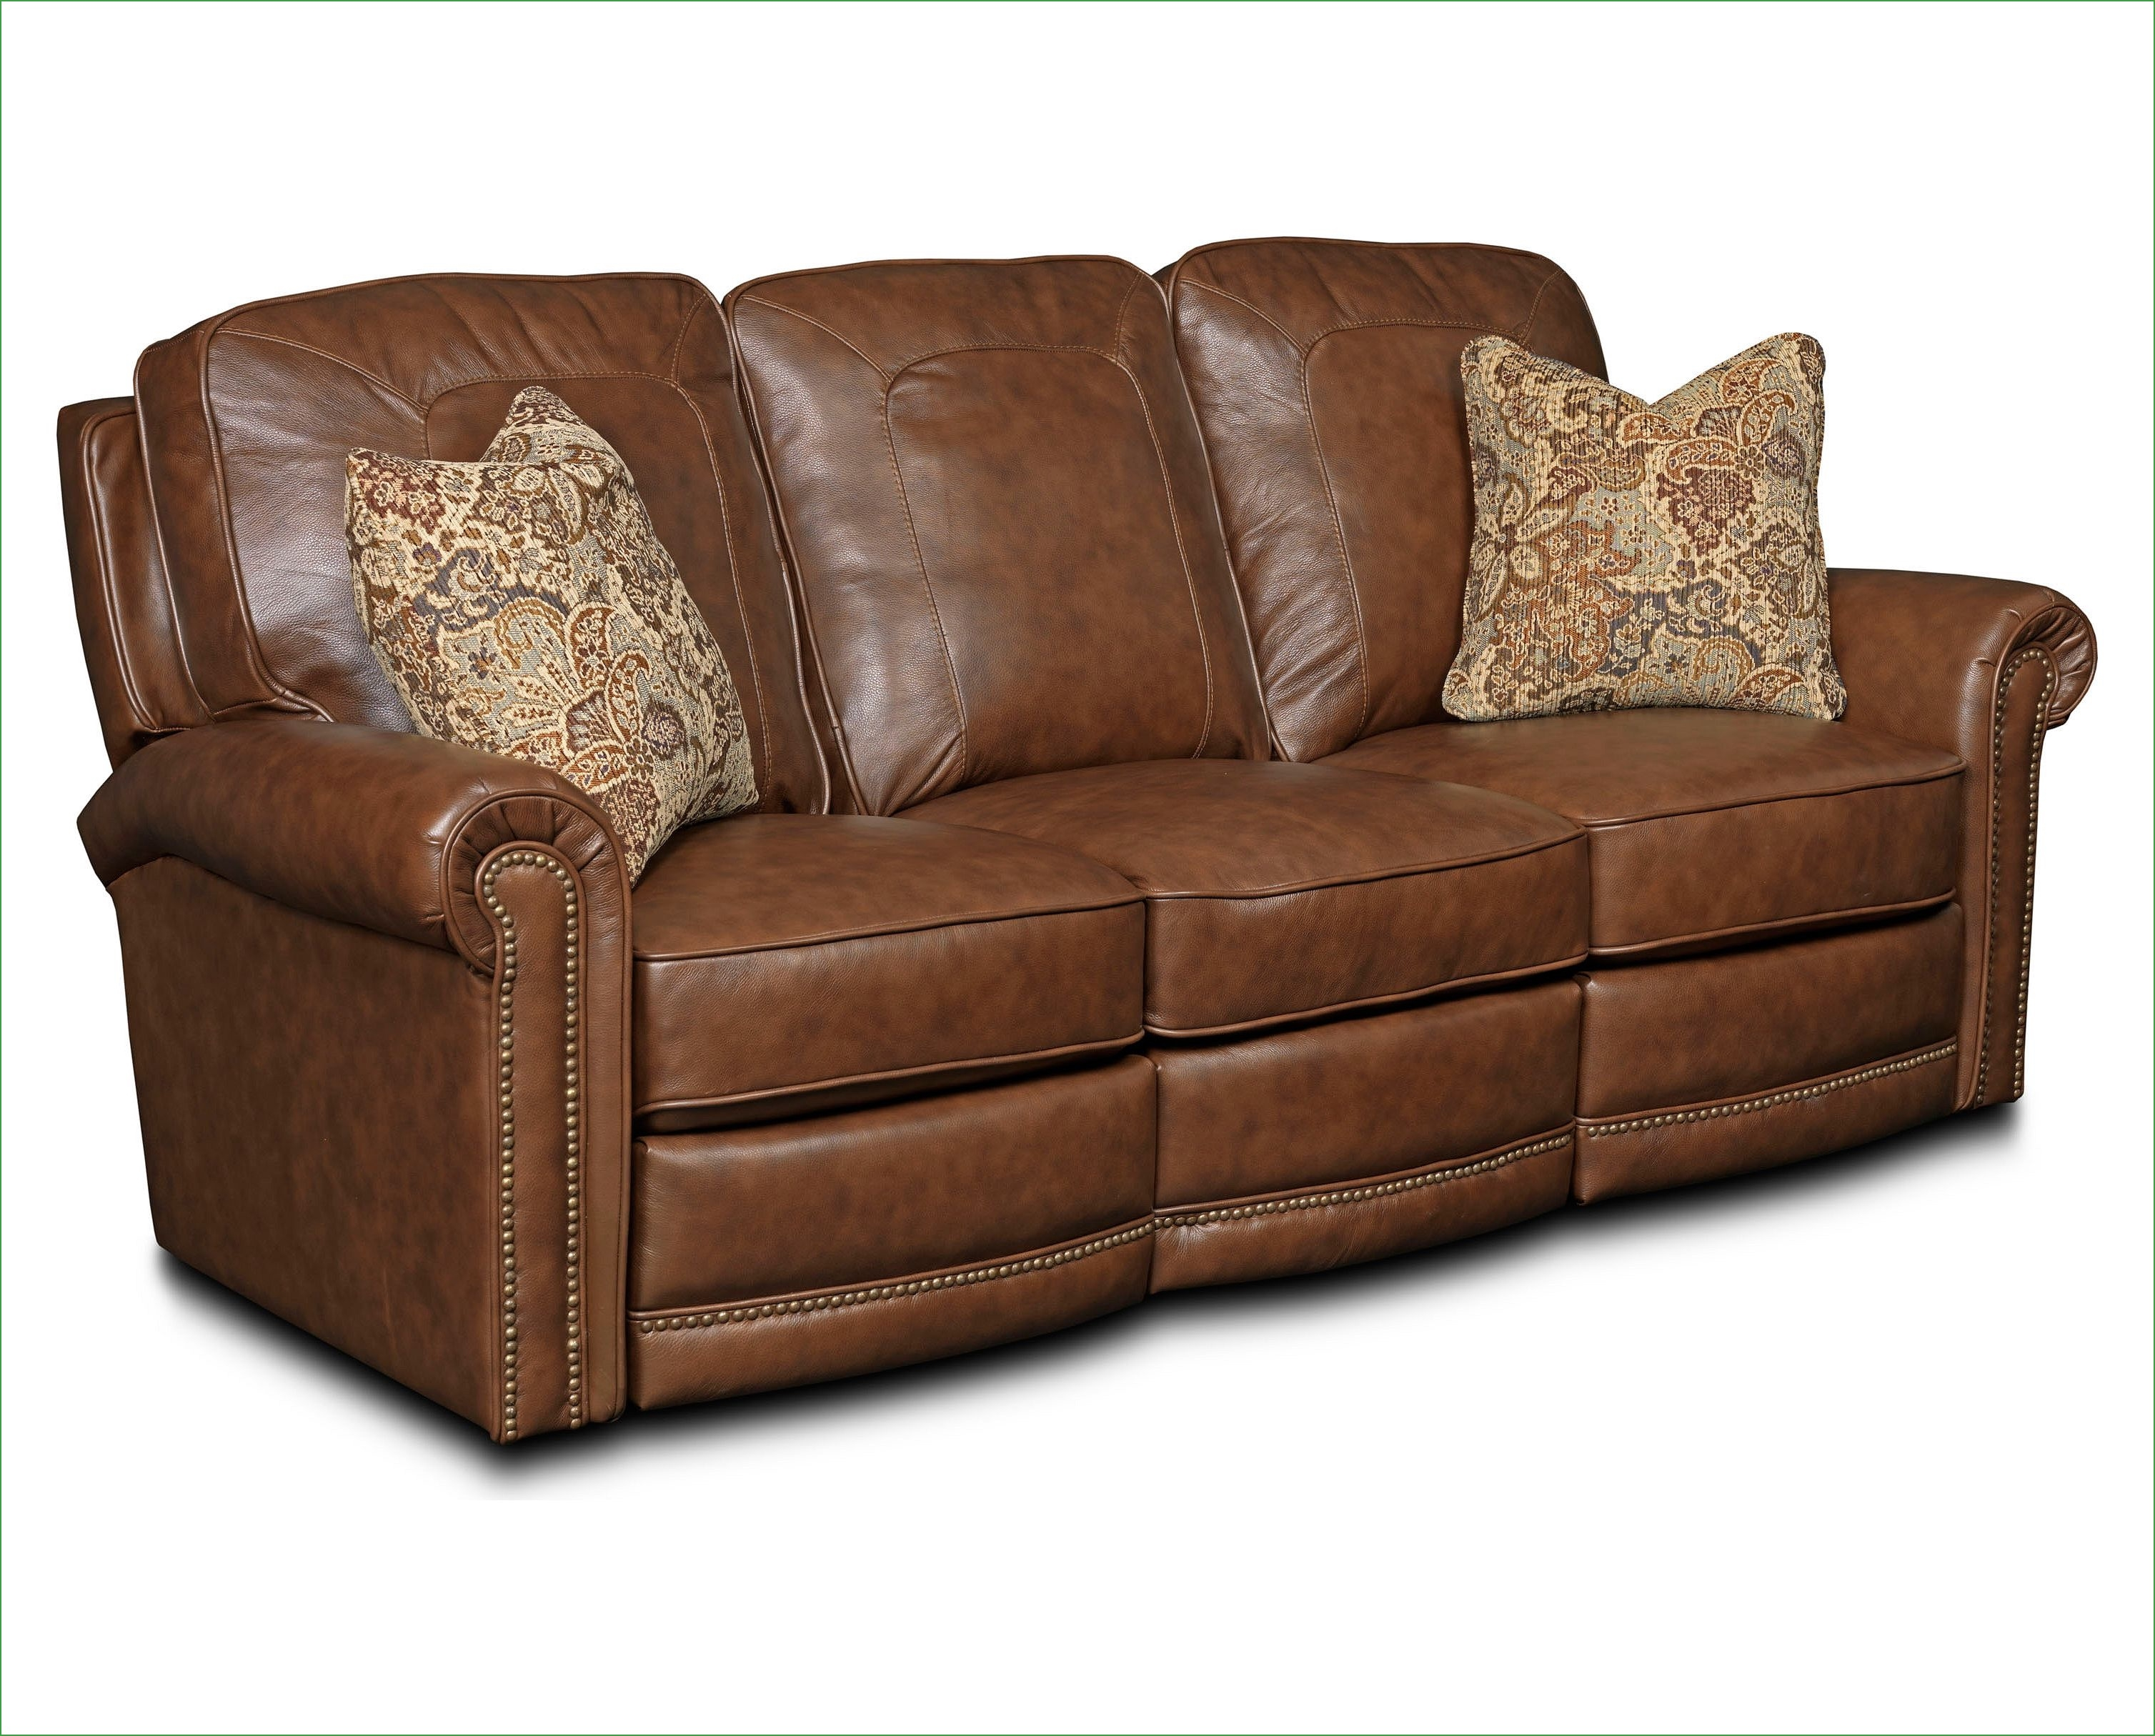 Havertys Bentley Sectional Sectional Havertys Bentley Sectional With Bentley Sectional Leather Sofa (Image 6 of 15)